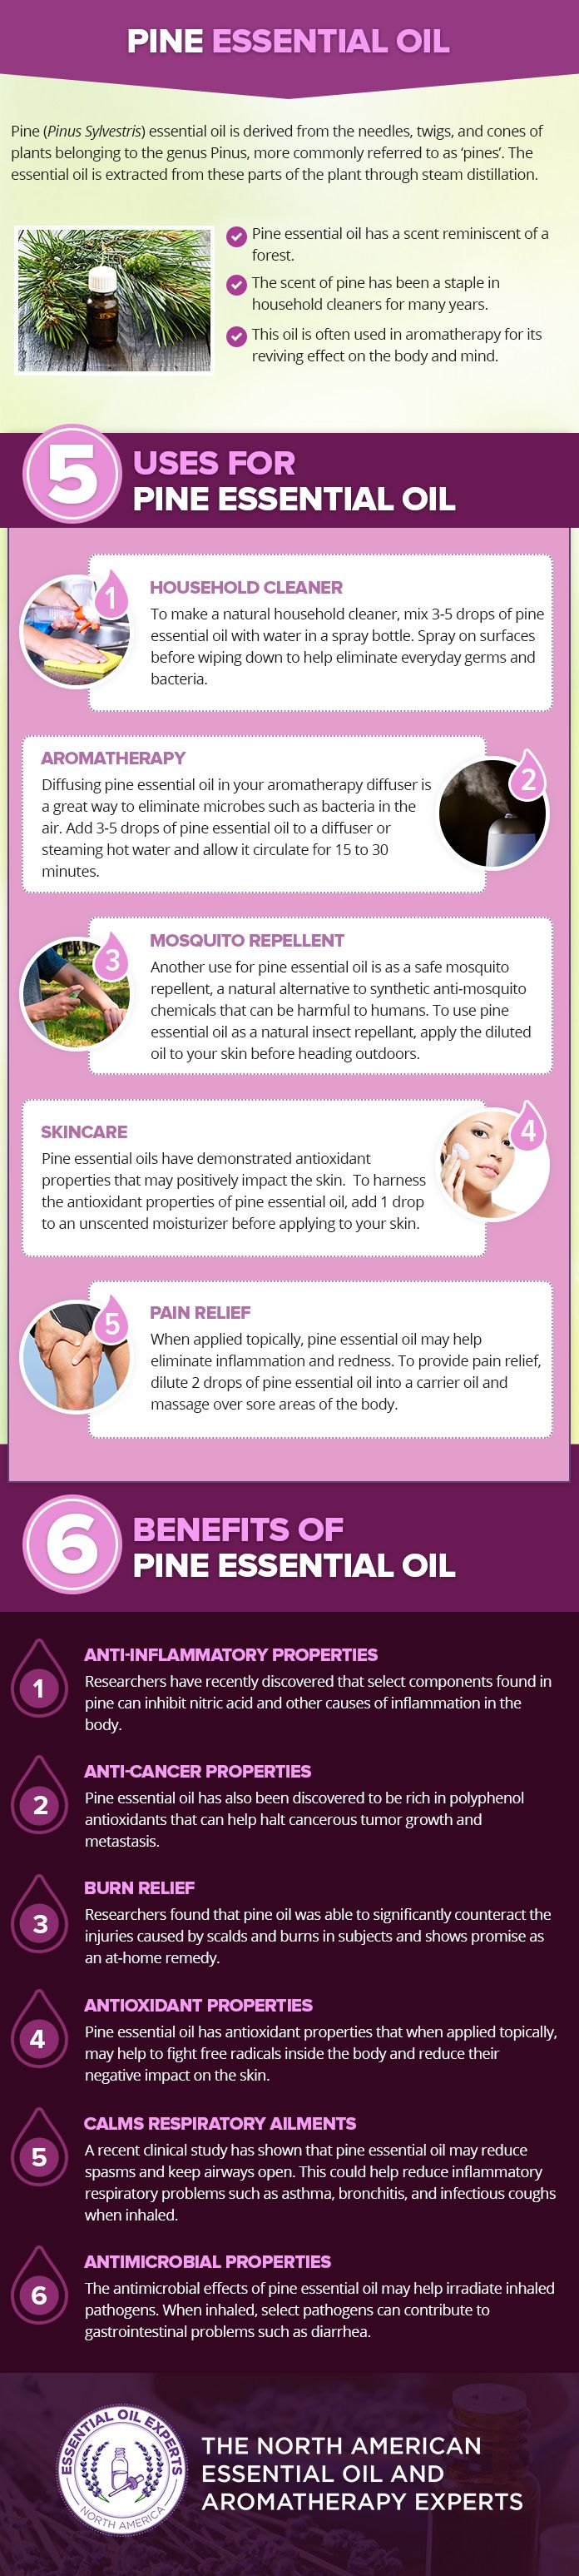 Pine Essential Oil Uses & Benefits